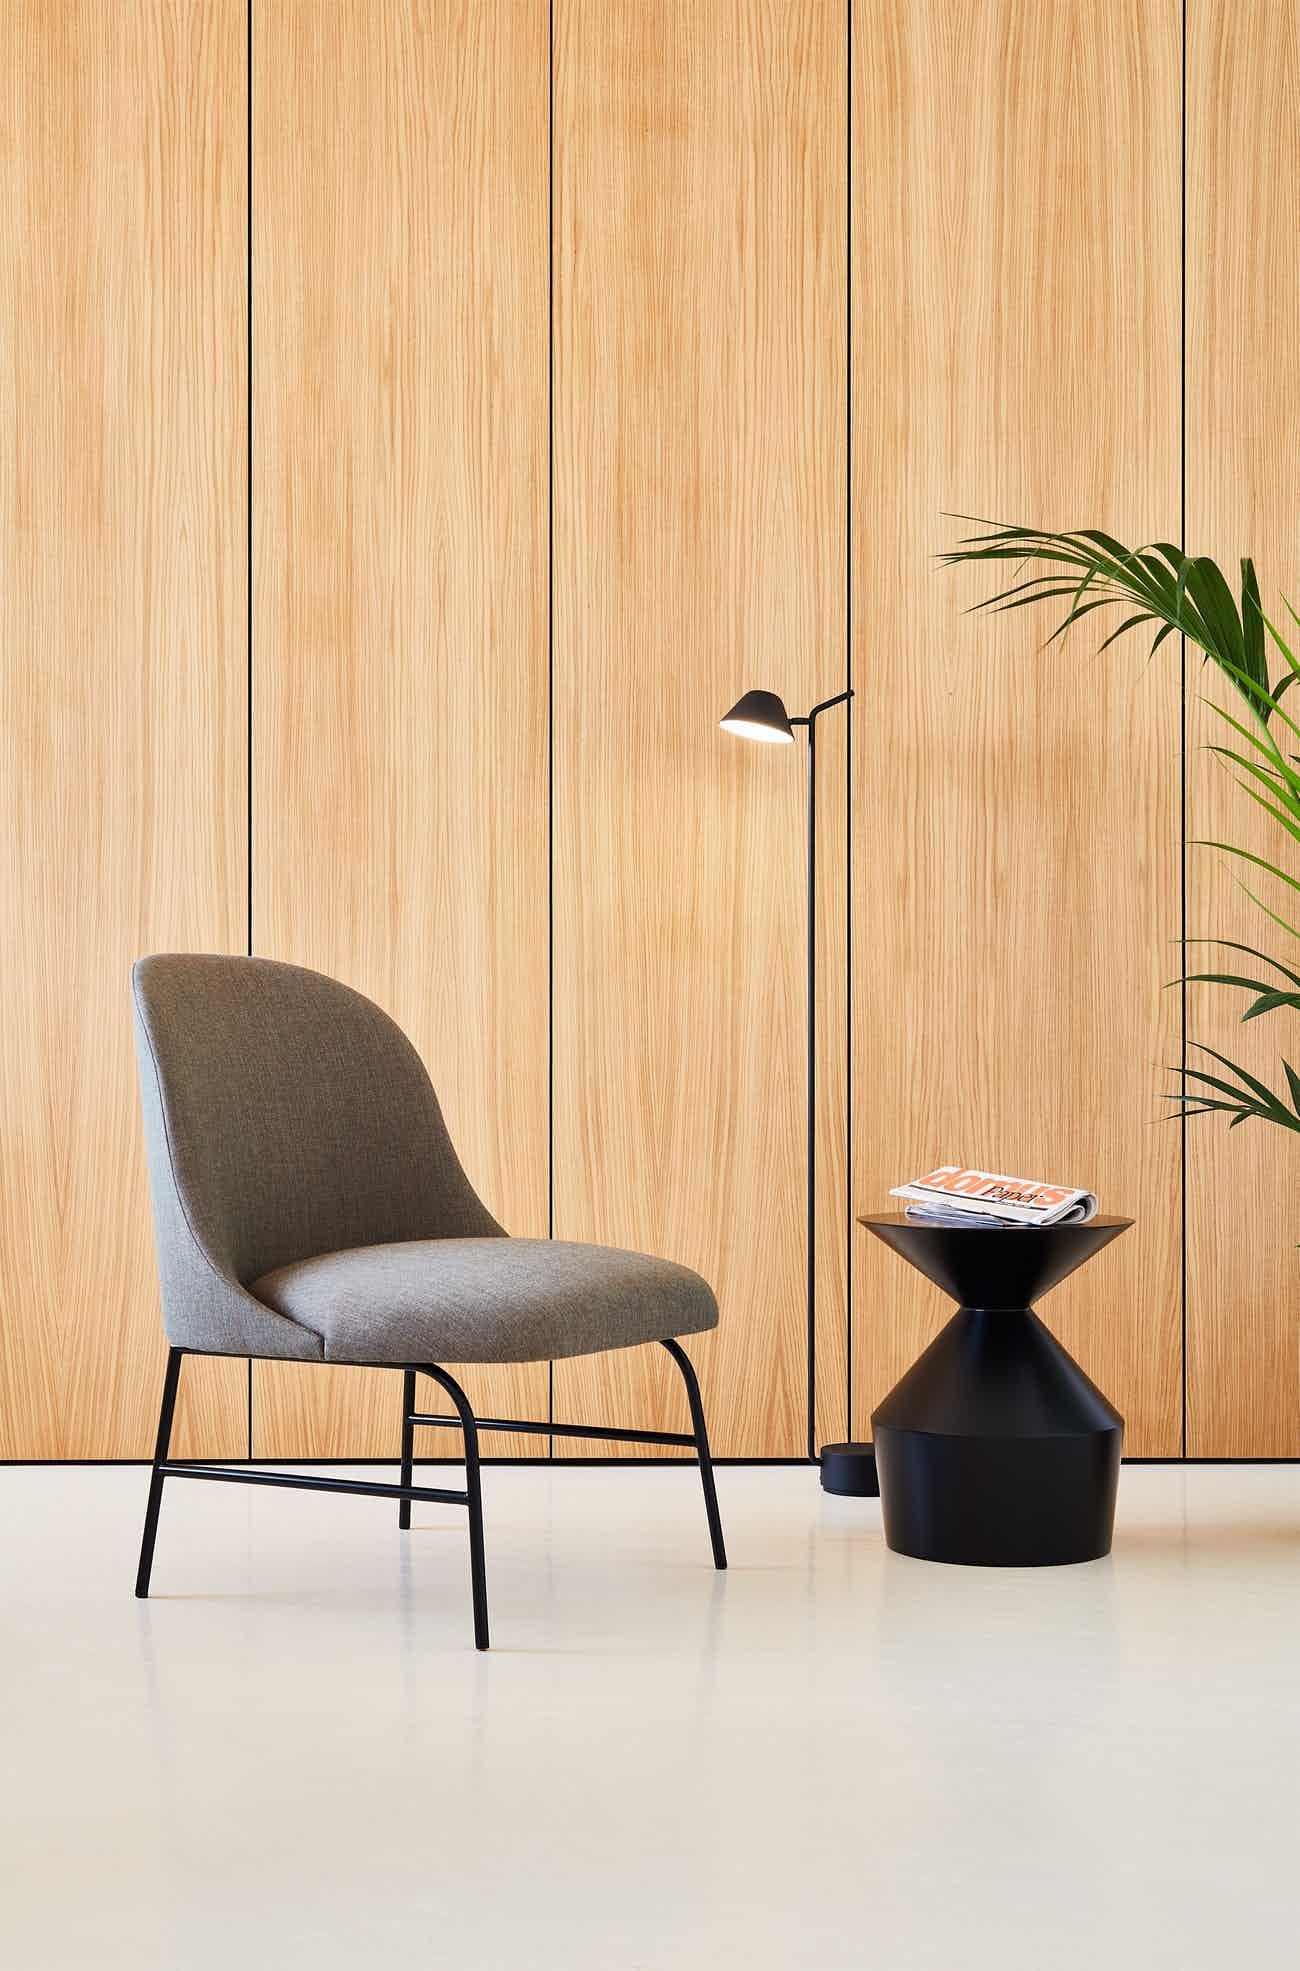 Tremendous Aleta Lounge Chair By Viccarbe Now Available At Haute Machost Co Dining Chair Design Ideas Machostcouk